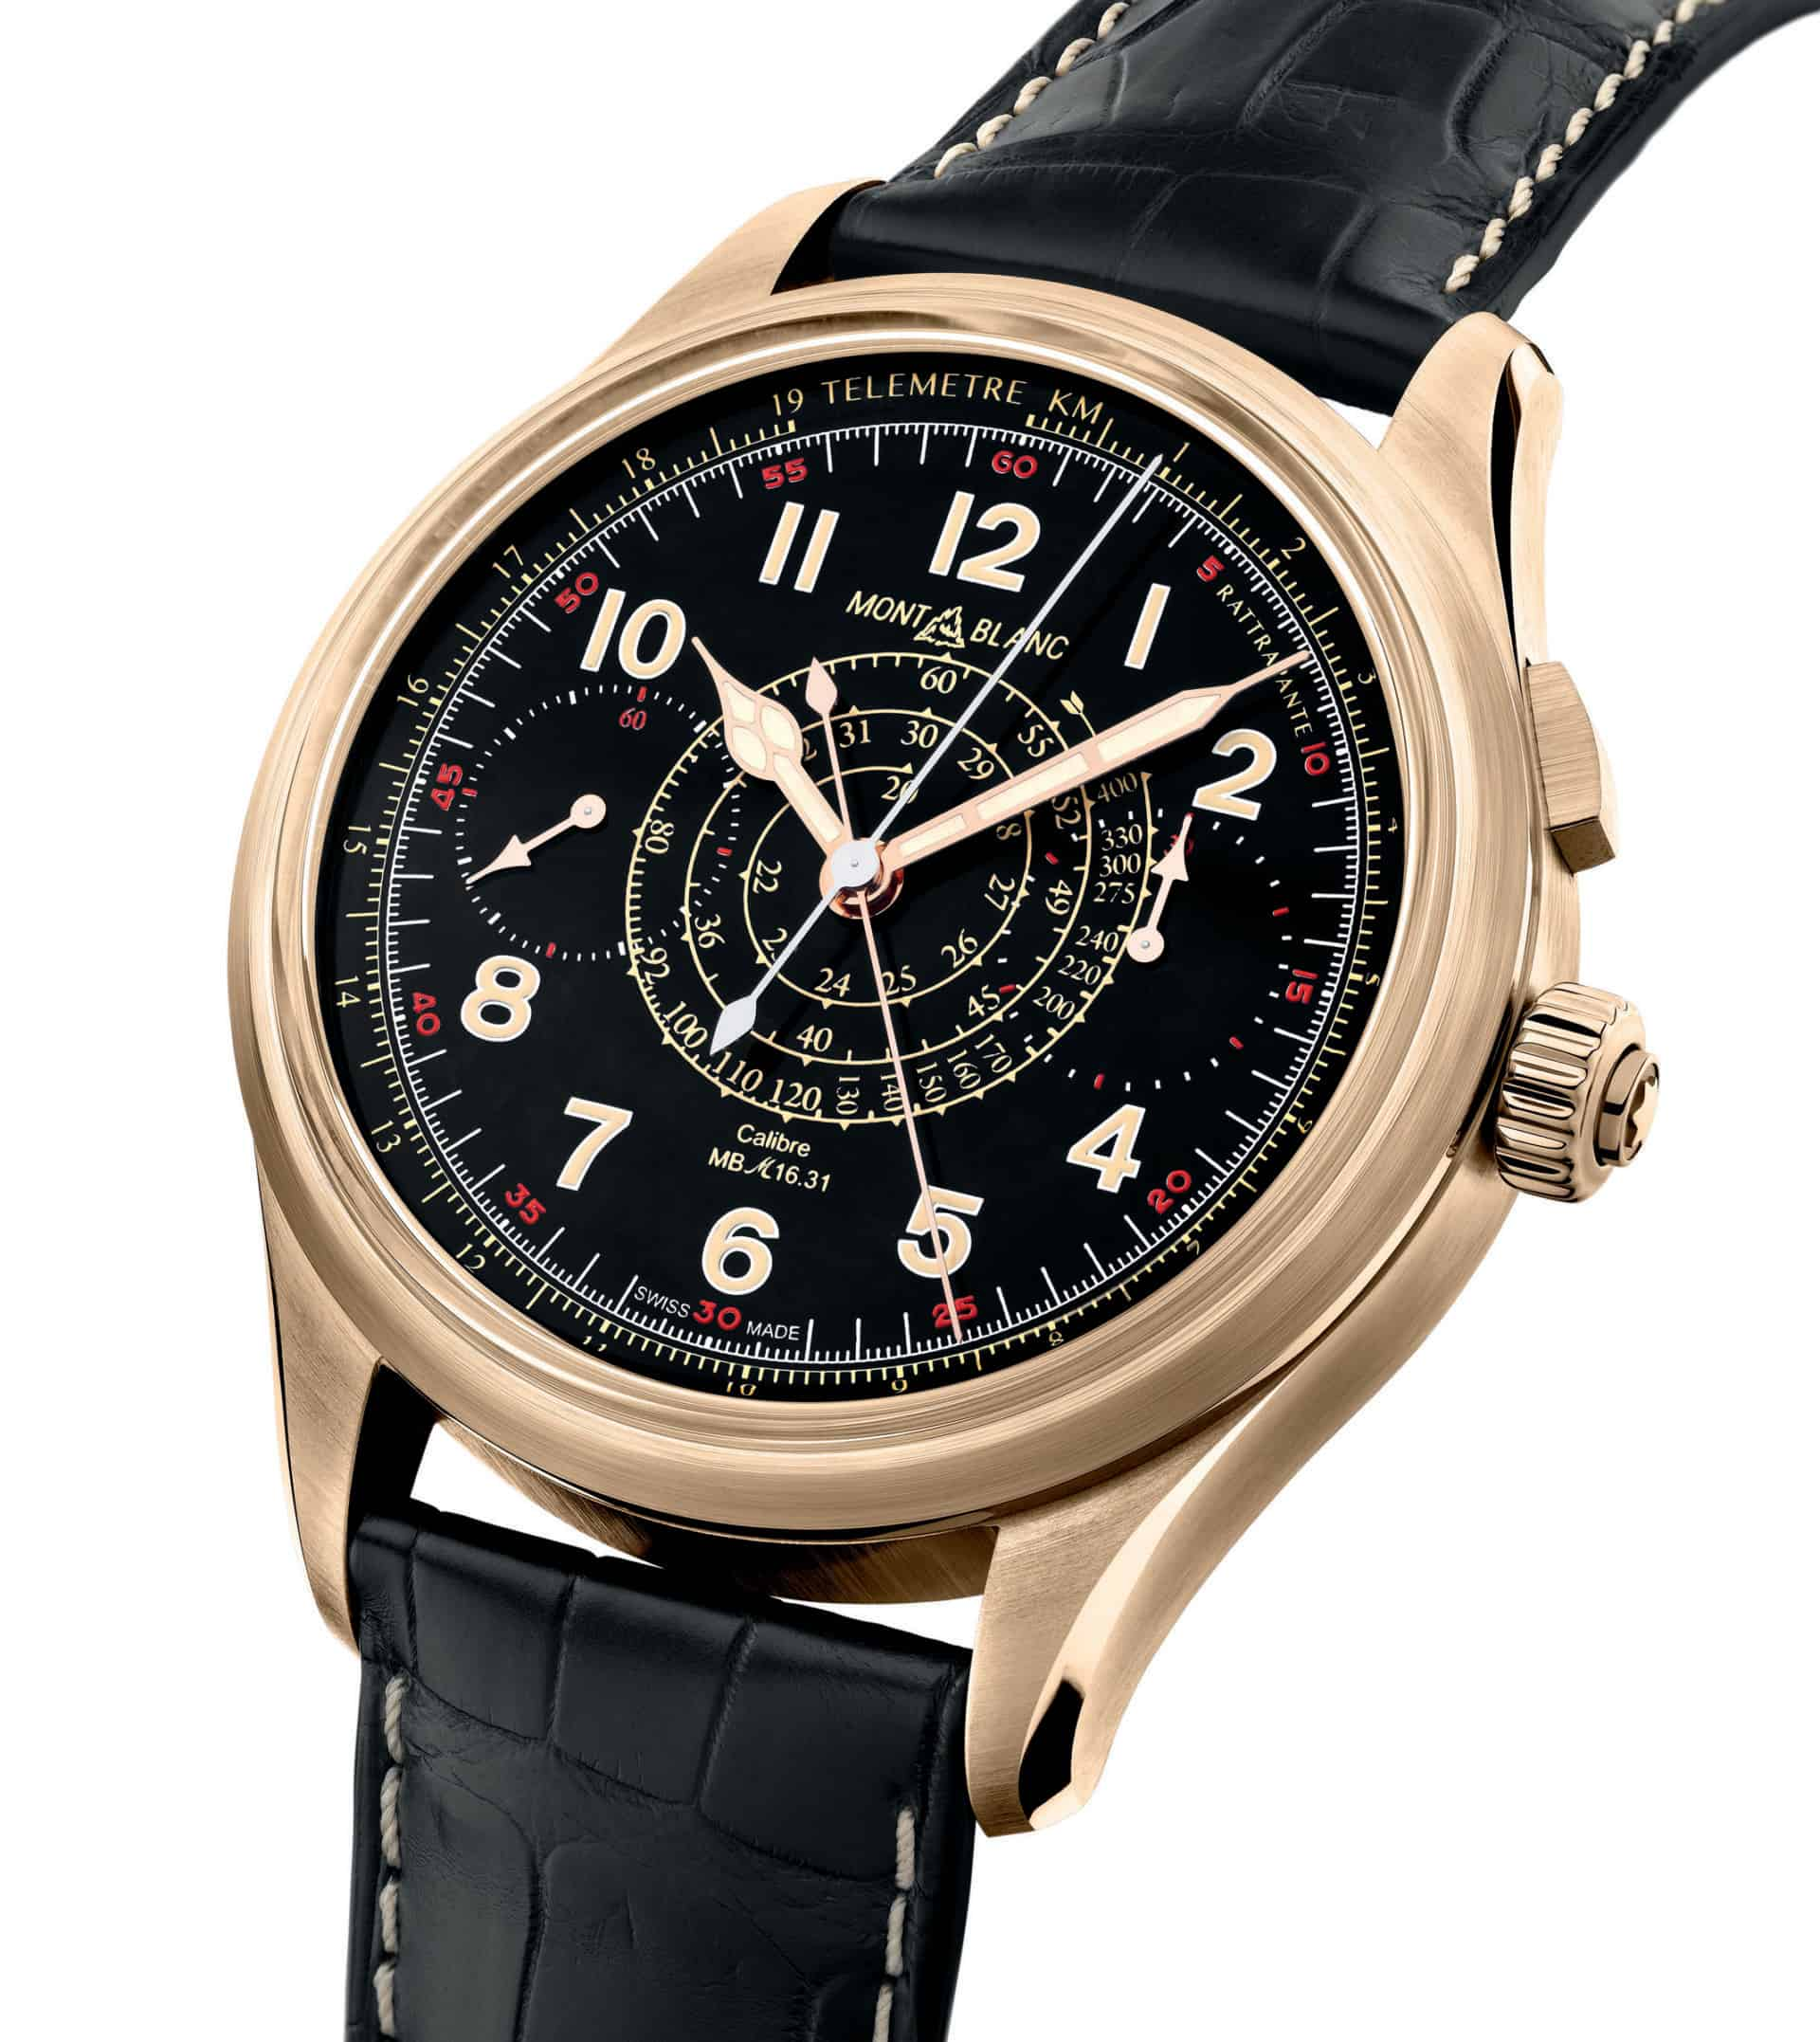 Montblanc_1858_Split Second Chronograph_119910 (3)